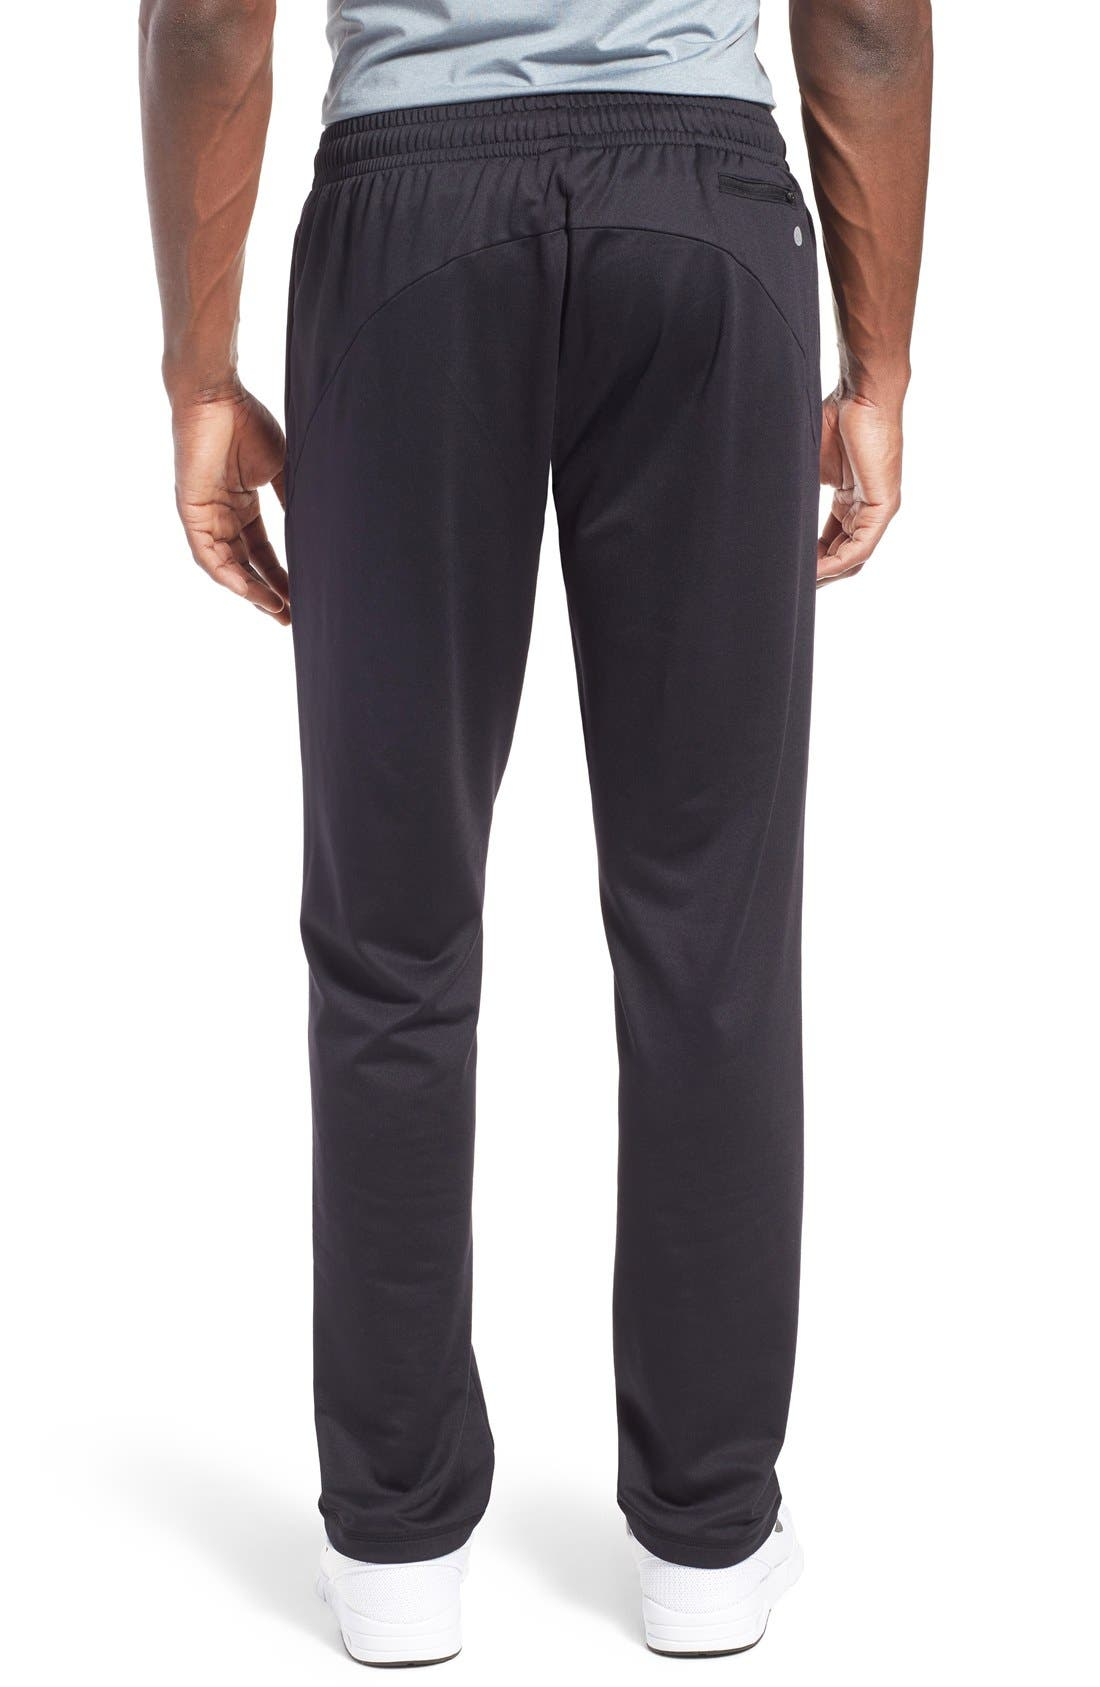 'Pyrite' Tapered Fit Knit Athletic Pants,                             Alternate thumbnail 2, color,                             001